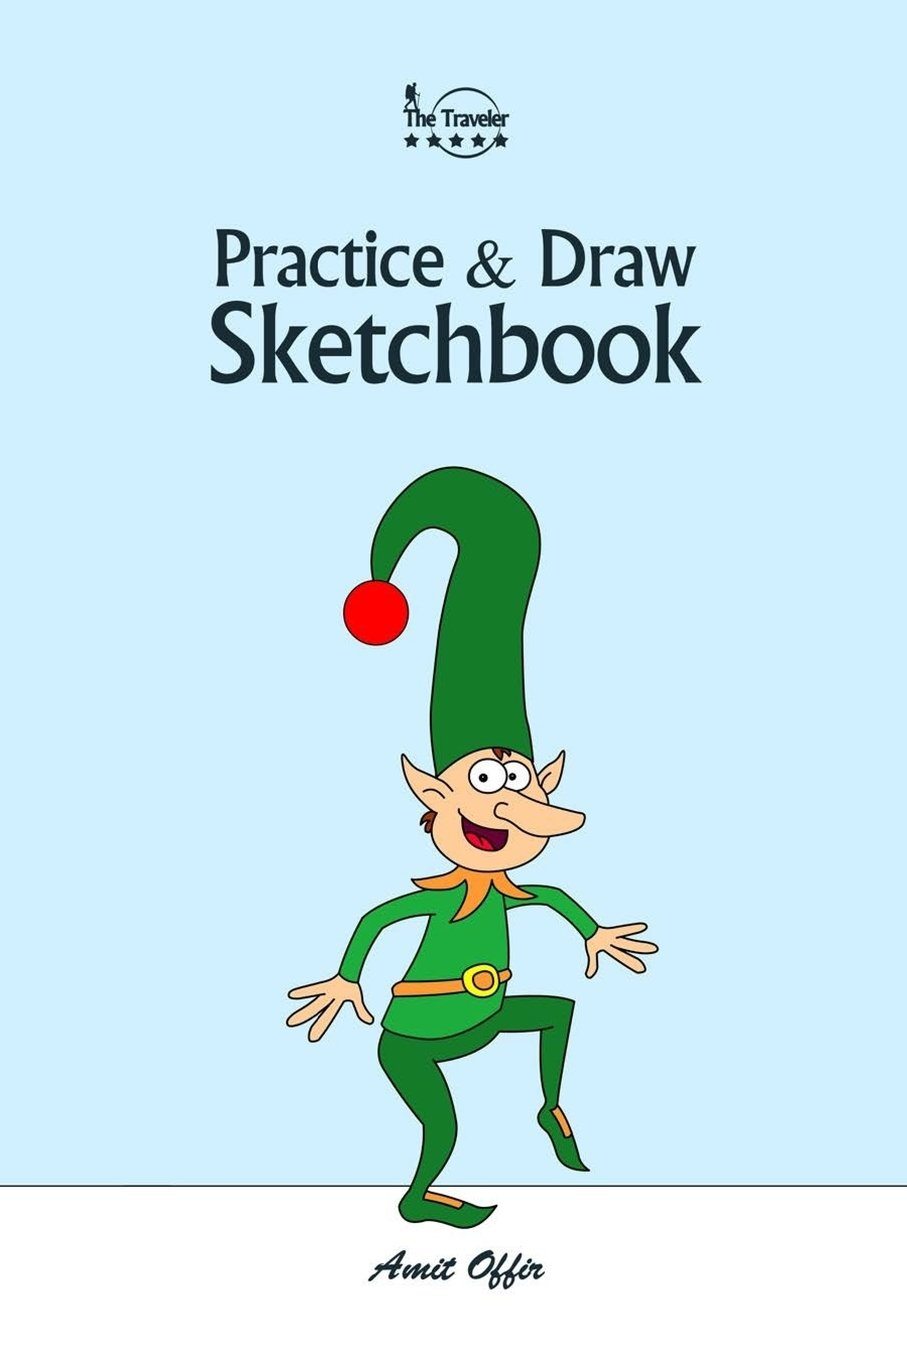 practice and draw sketchbook christmas learn to draw christmas cartoon characters practice and draw 6x9 inch 74 pages volume 2 offir amit offir amit 9781979979955 amazon com books draw sketchbook christmas